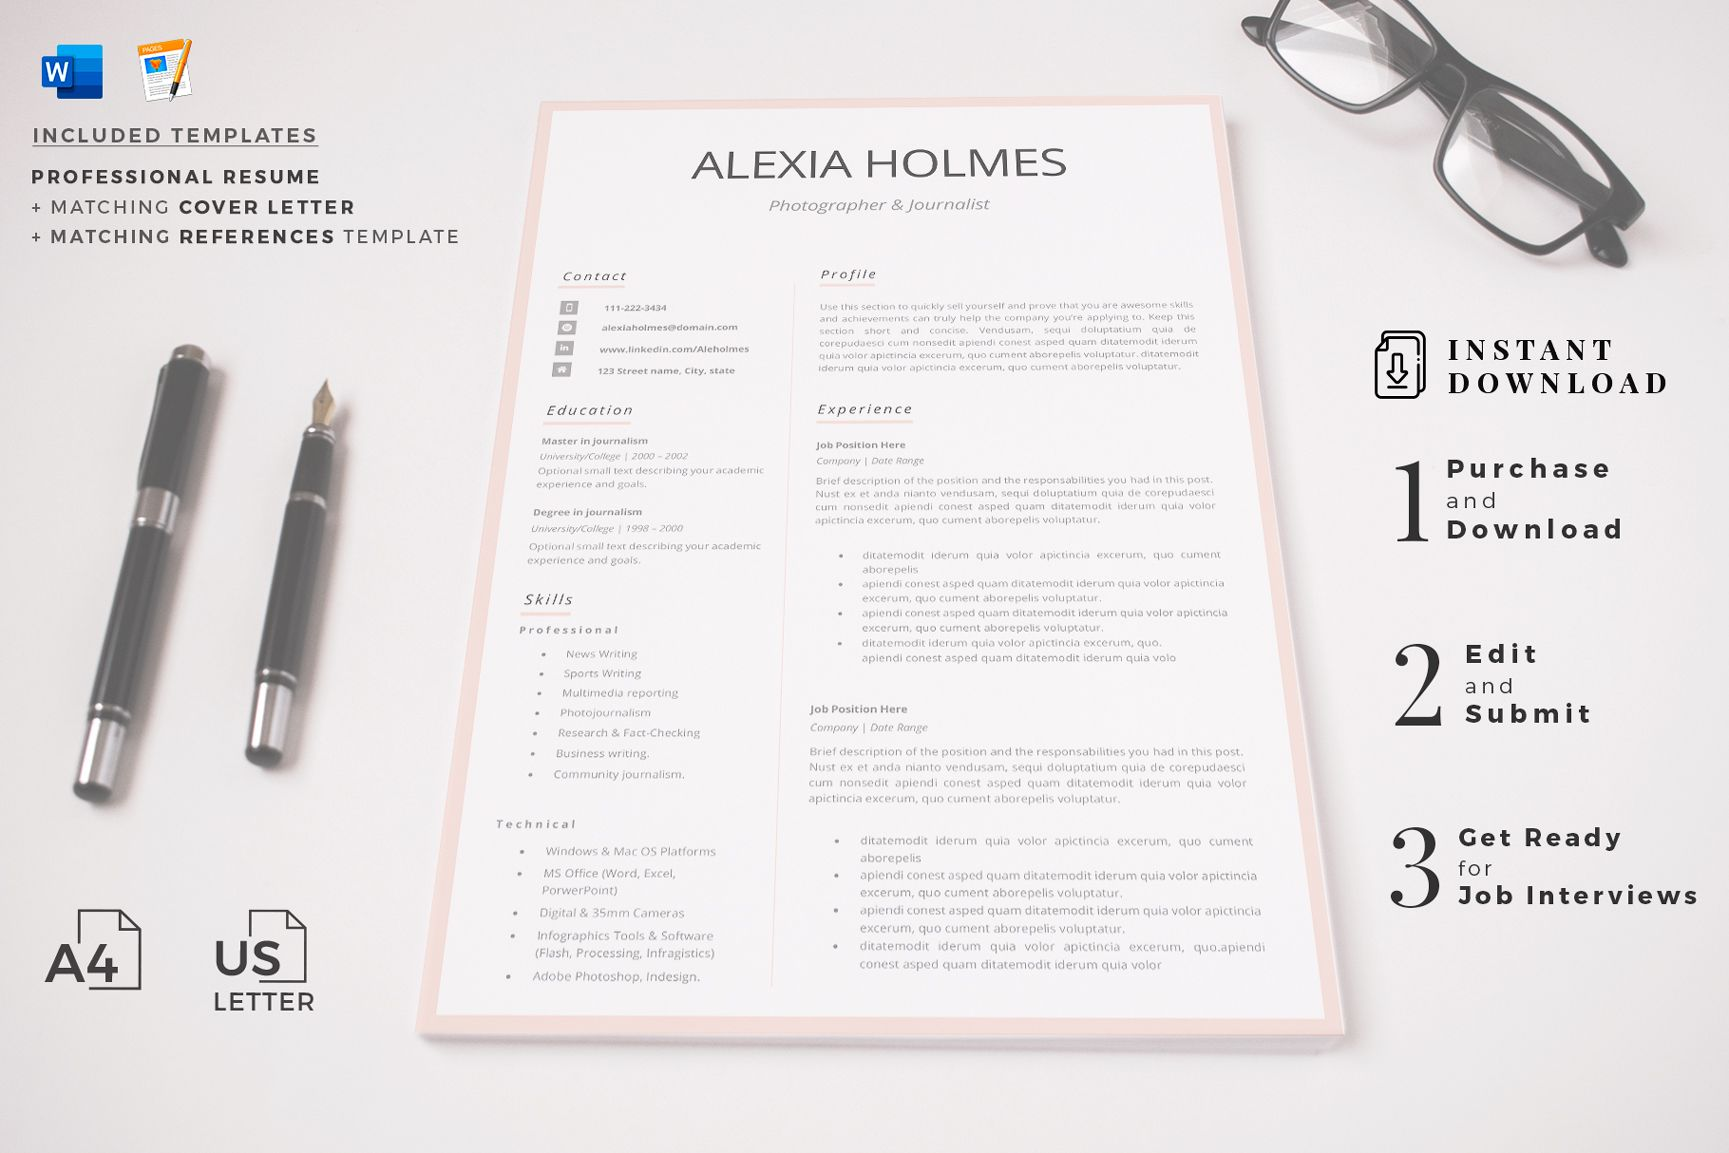 Creative Resume Templates For Ms Word And Mac Pages Professional Resume Templates And Marketing Resume Creative Resume Templates Resume Template Professional